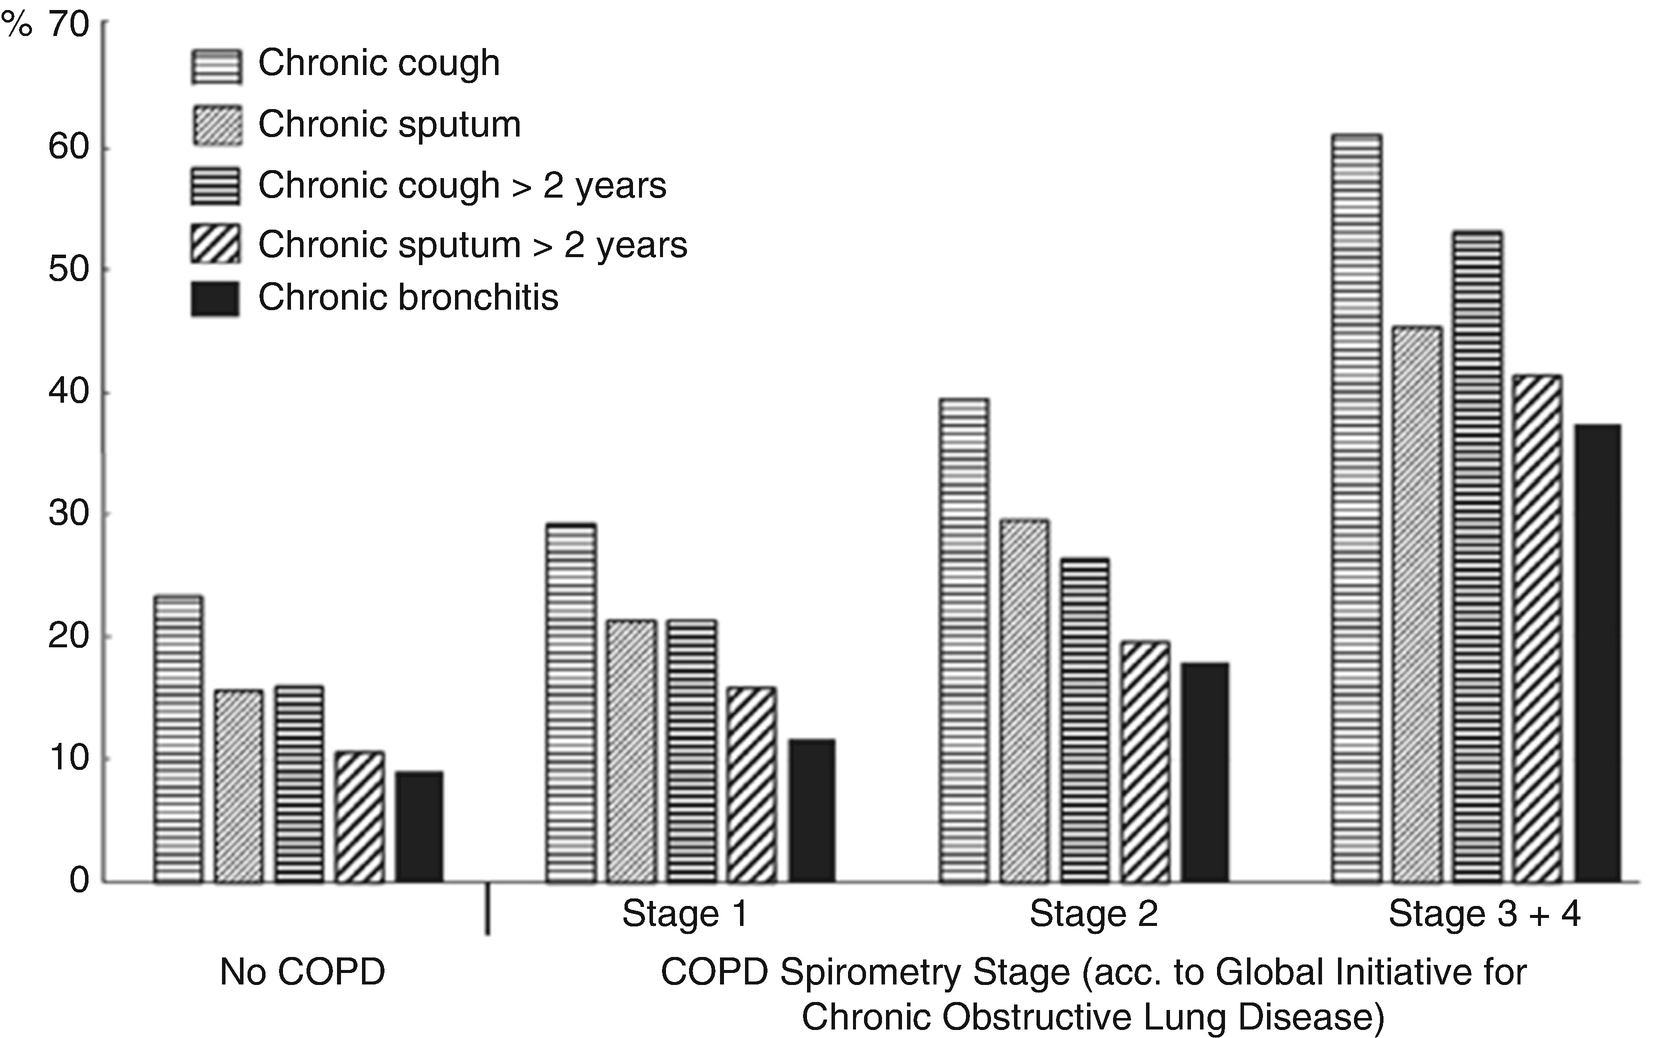 Coexistence of Chronic Bronchitis in Chronic Obstructive